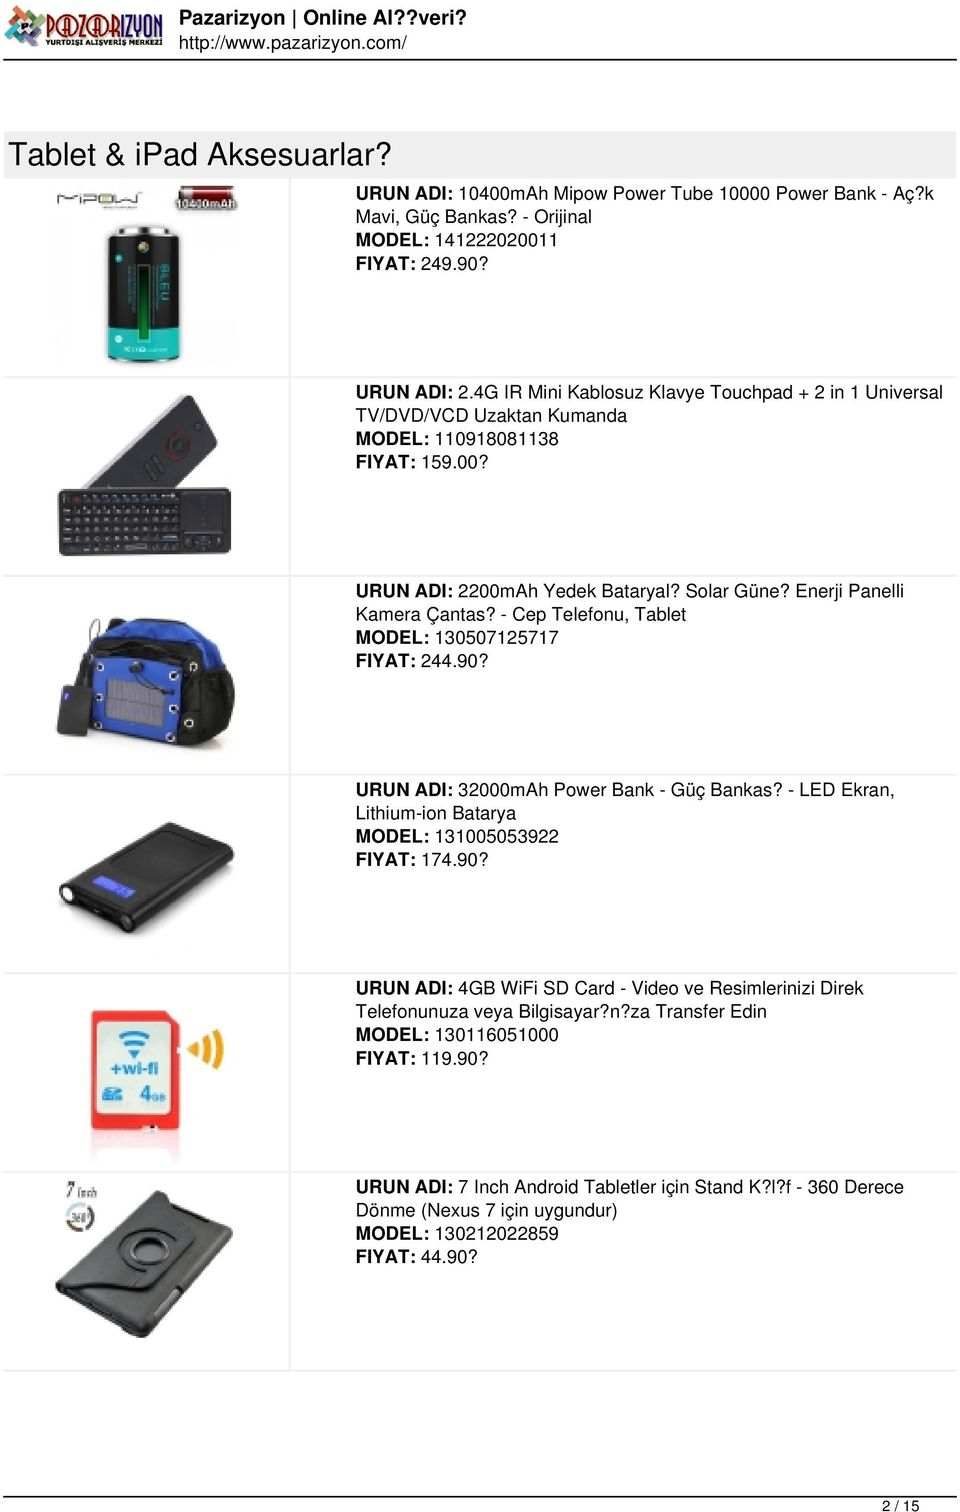 - Cep Telefonu, Tablet MODEL: 130507125717 FIYAT: 244.90? URUN ADI: 32000mAh Power Bank - Güç Bankas? - LED Ekran, Lithium-ion Batarya MODEL: 131005053922 FIYAT: 174.90? URUN ADI: 4GB WiFi SD Card - Video ve Resimlerinizi Direk Telefonunuza veya Bilgisayar?